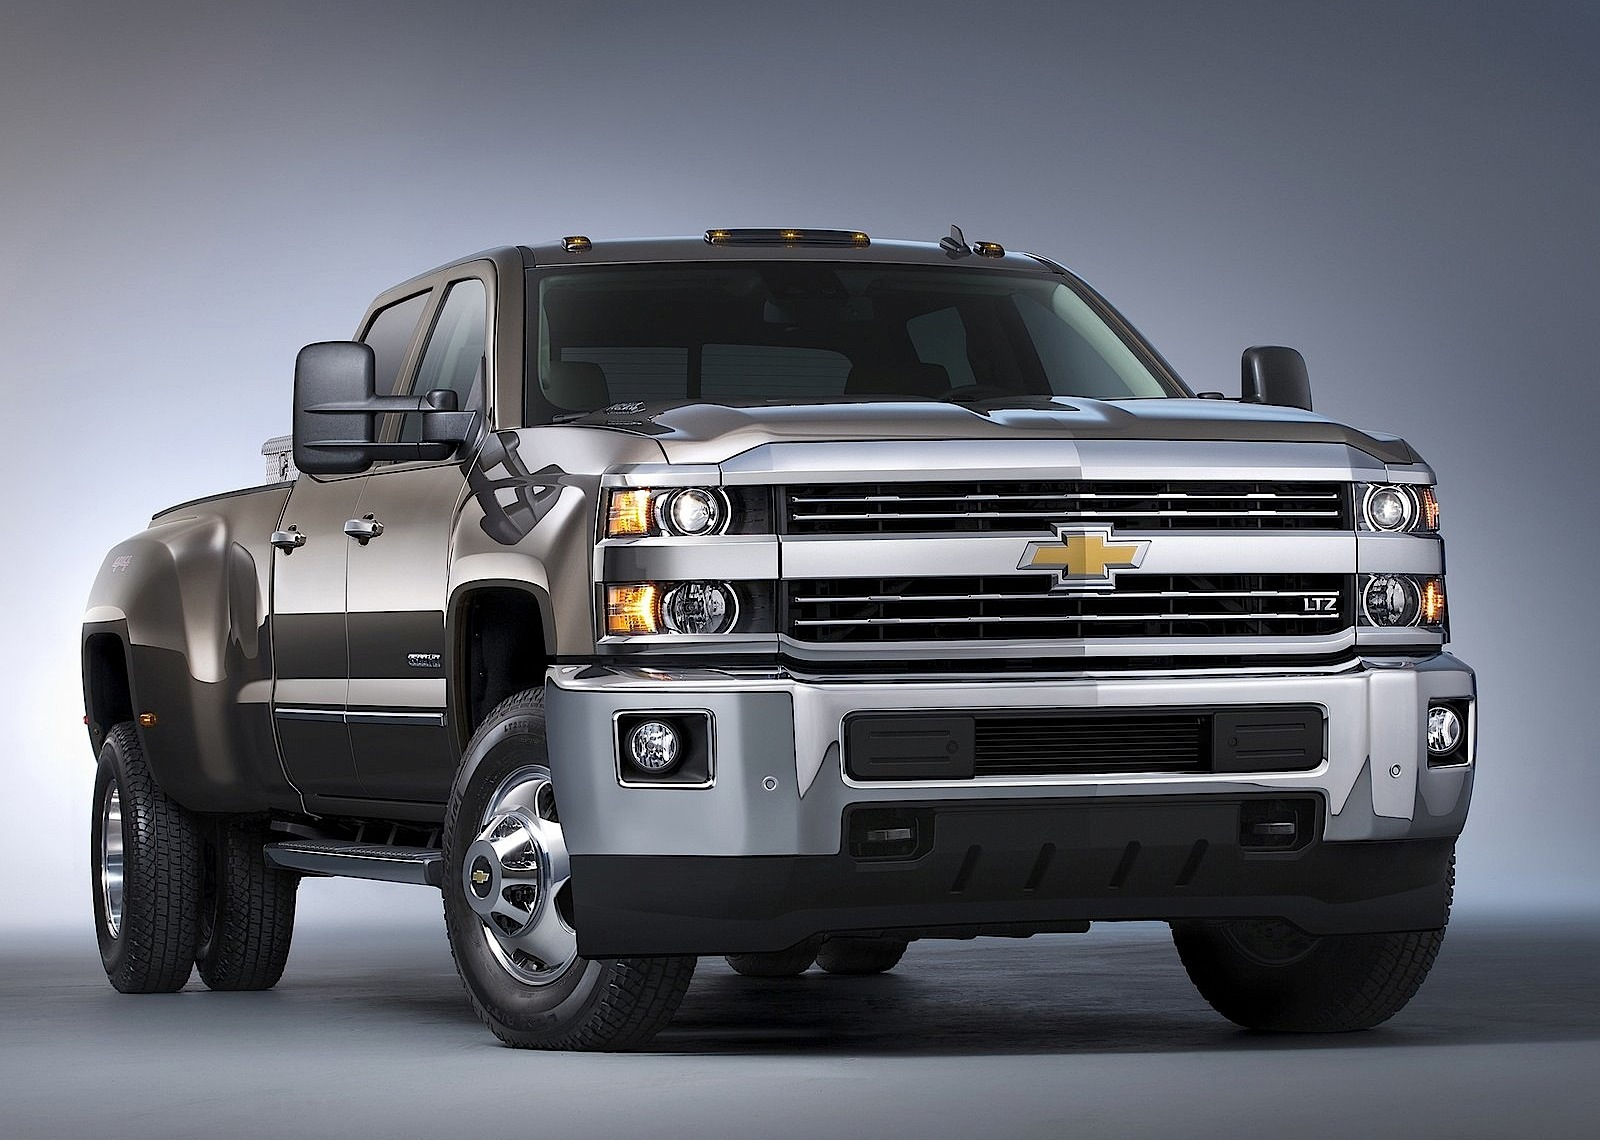 Chevrolet Silverado 3500 Hd Crew Cab Specs Photos 2013 2014 Wiring Diagram Present